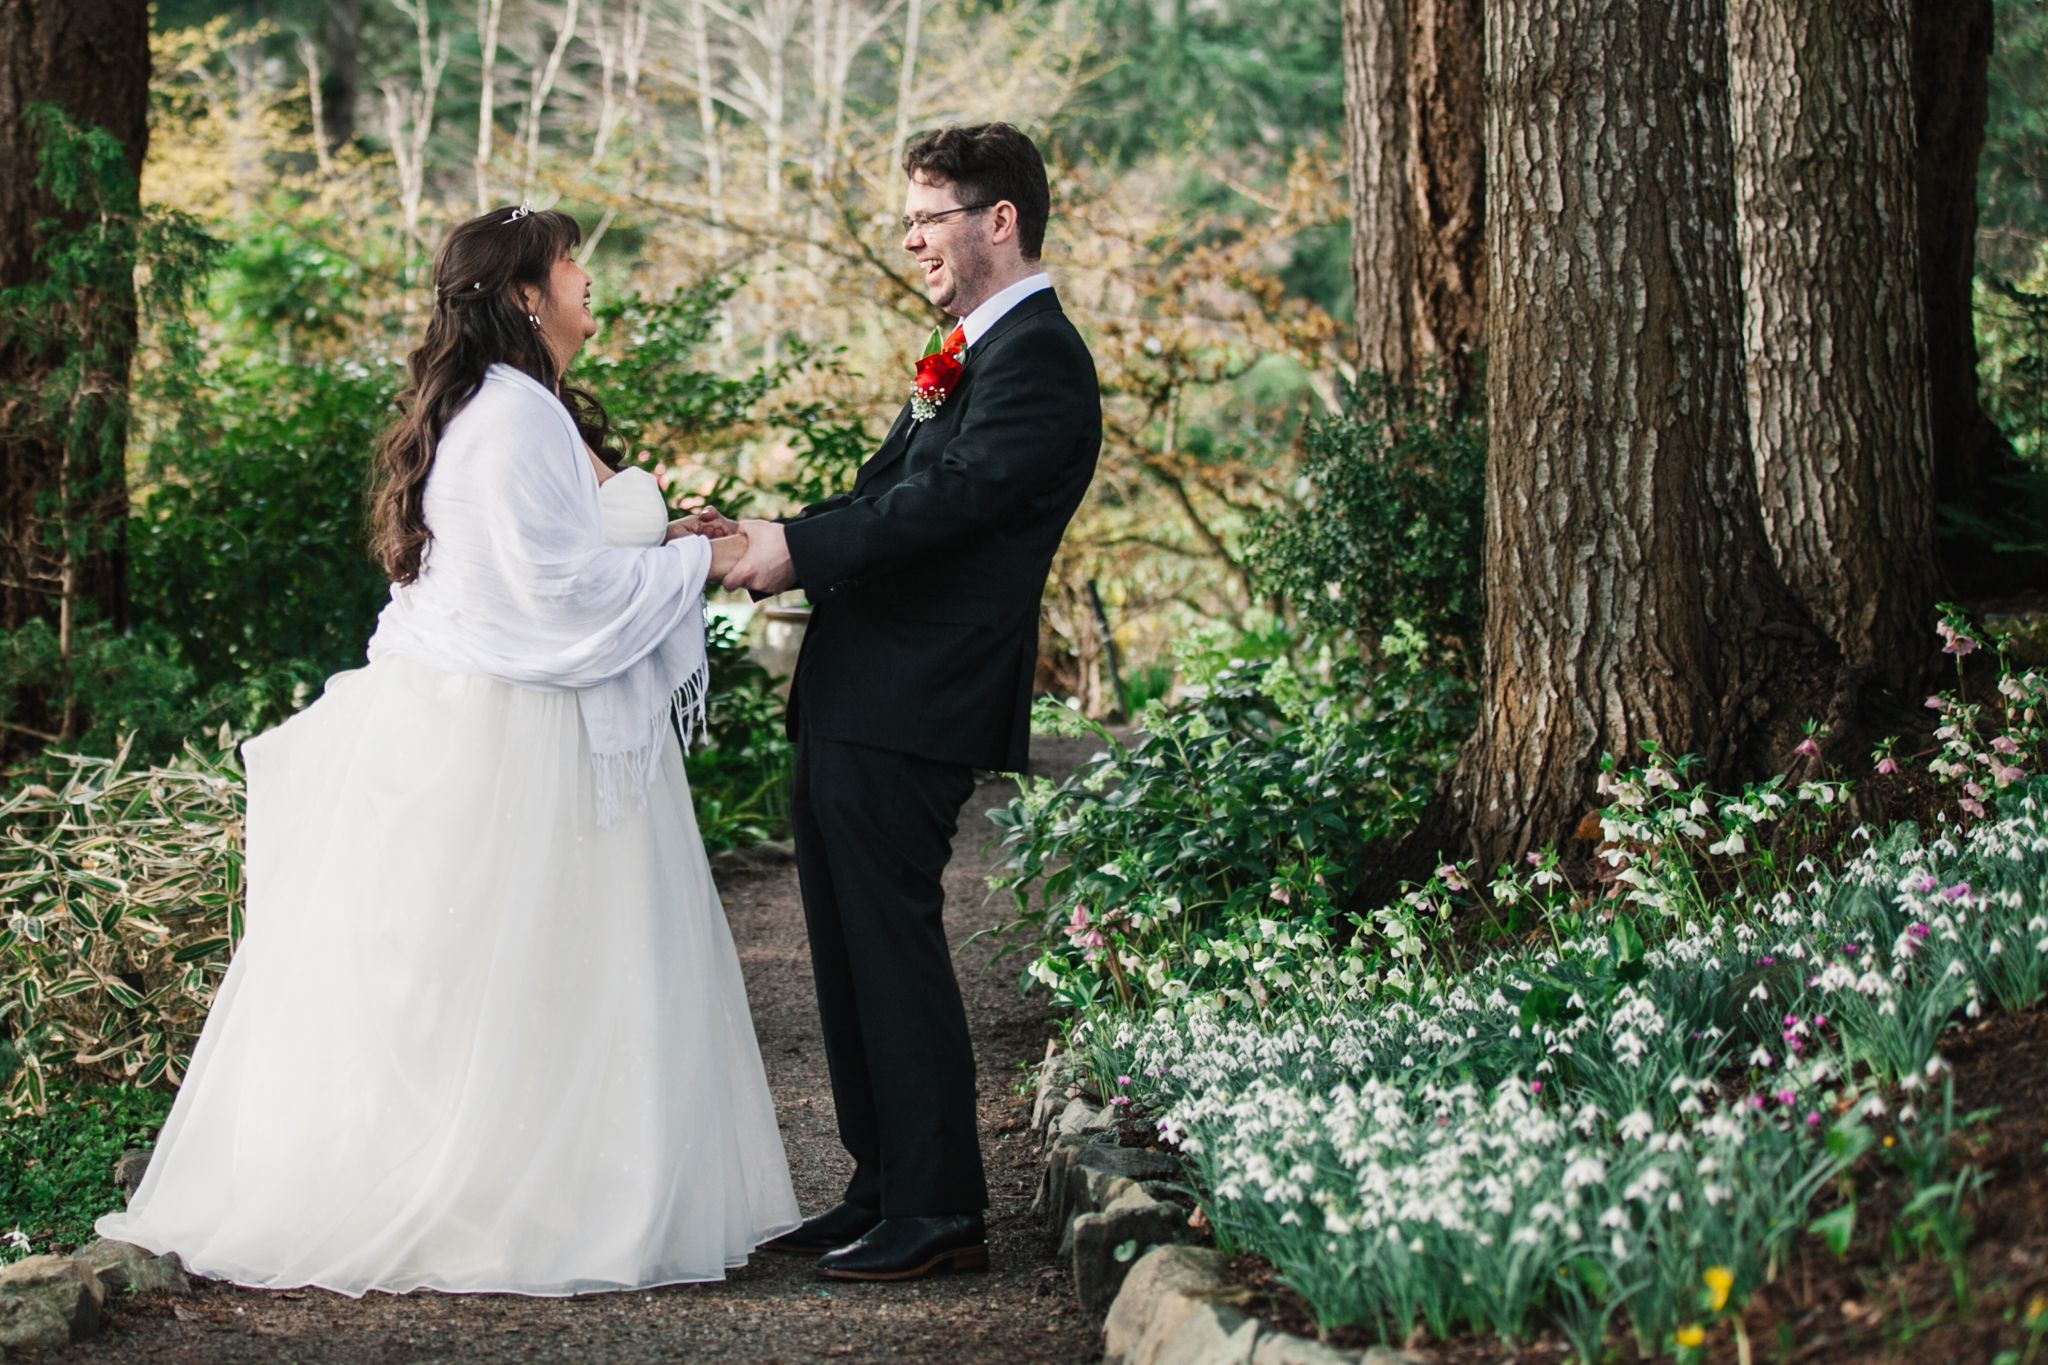 winter wedding at the gardens at hcp image by moonrise